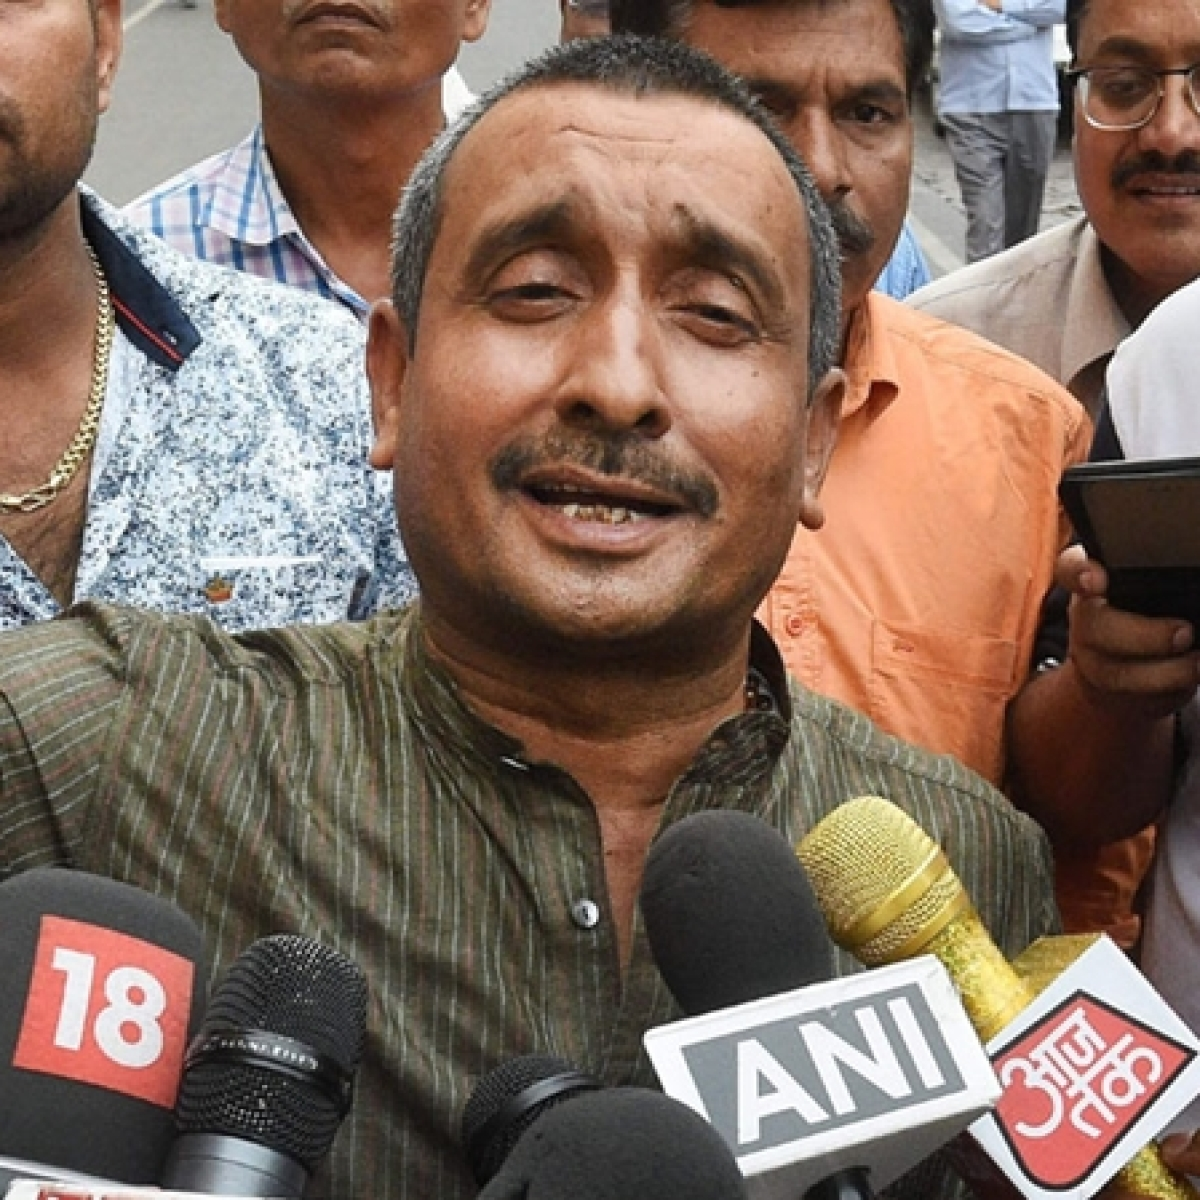 Unnao rape victim accident case: CBI drops murder charges against ex-BJP MLA Kuldeep Singh Sengar